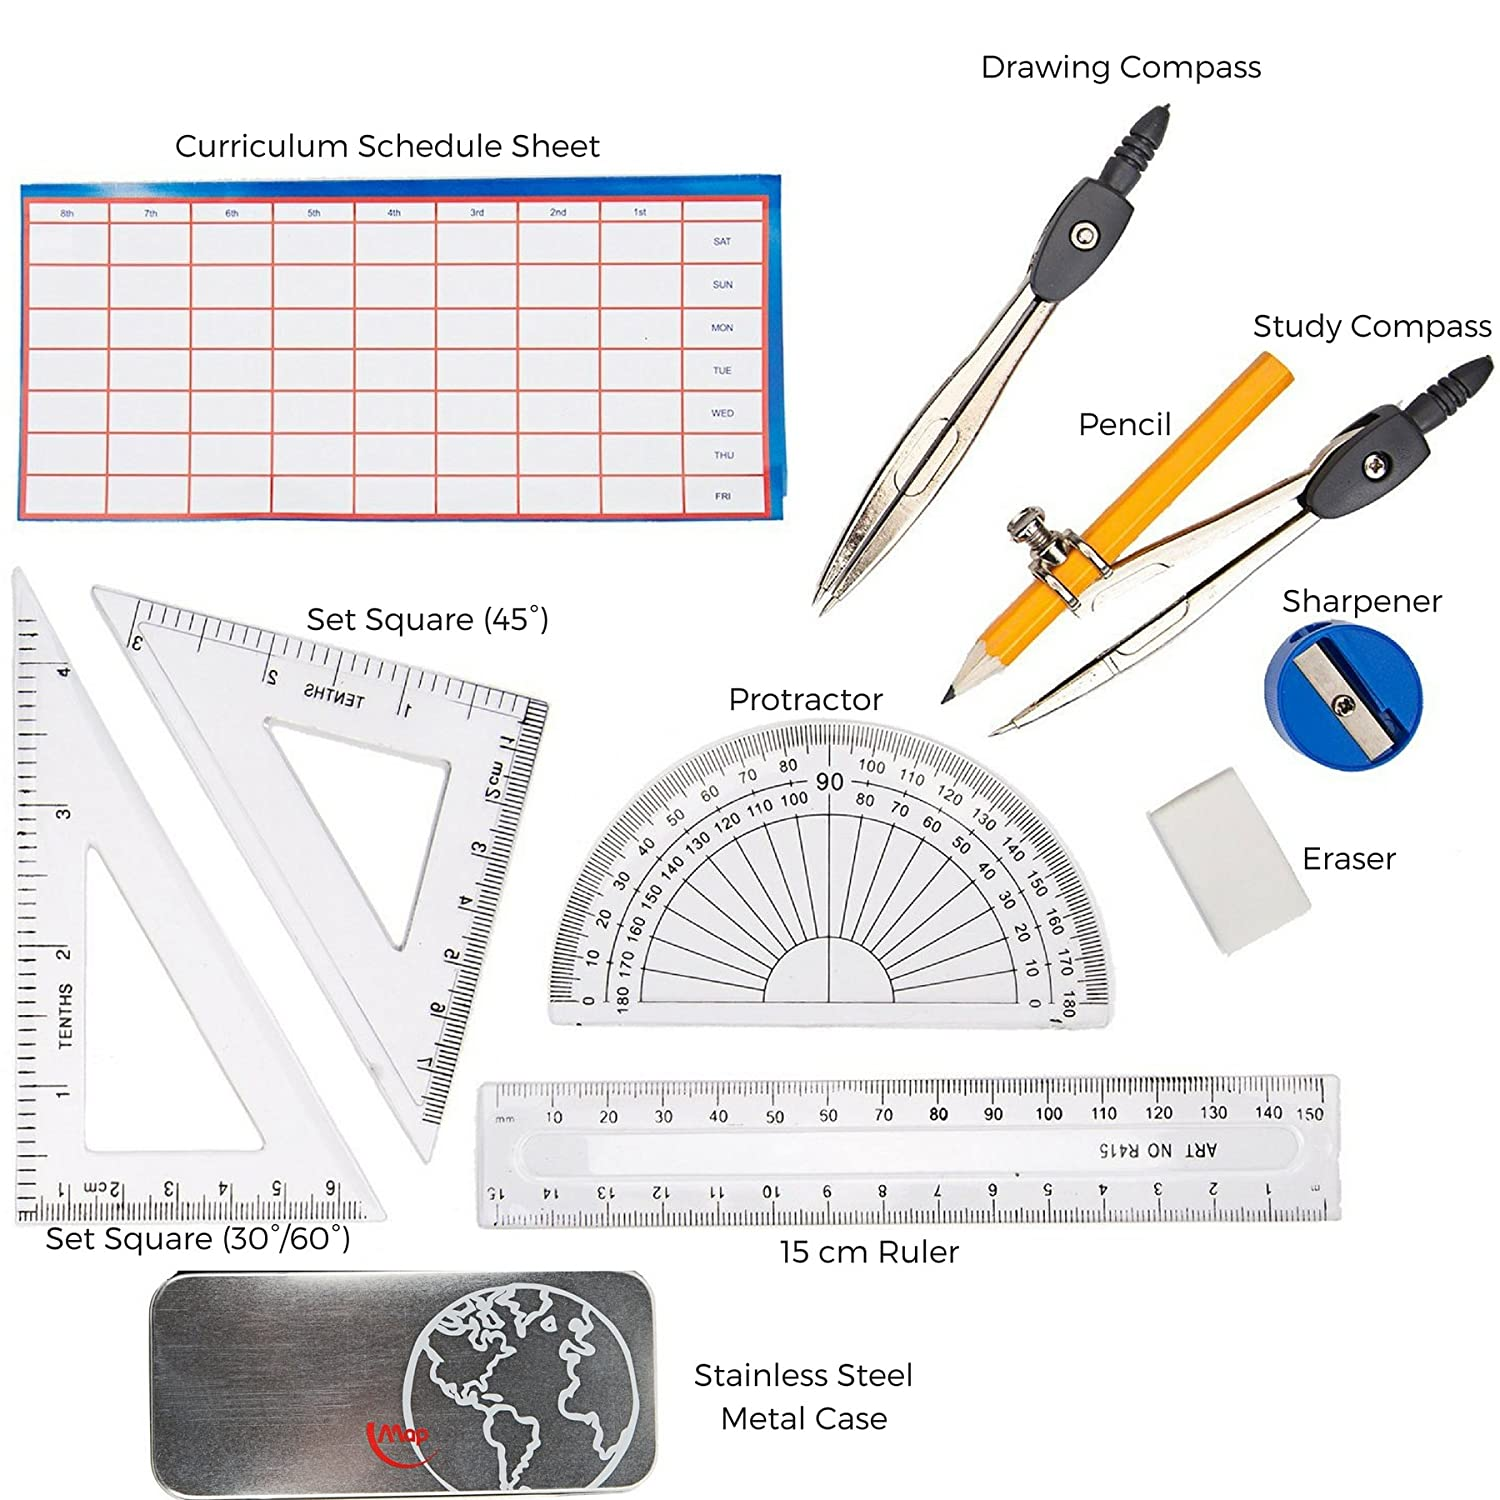 Protractor to print word problems for 5th graders significant printable protractor template elioleracom 81lwst3xlnl printable protractor template pronofoot35fo Gallery